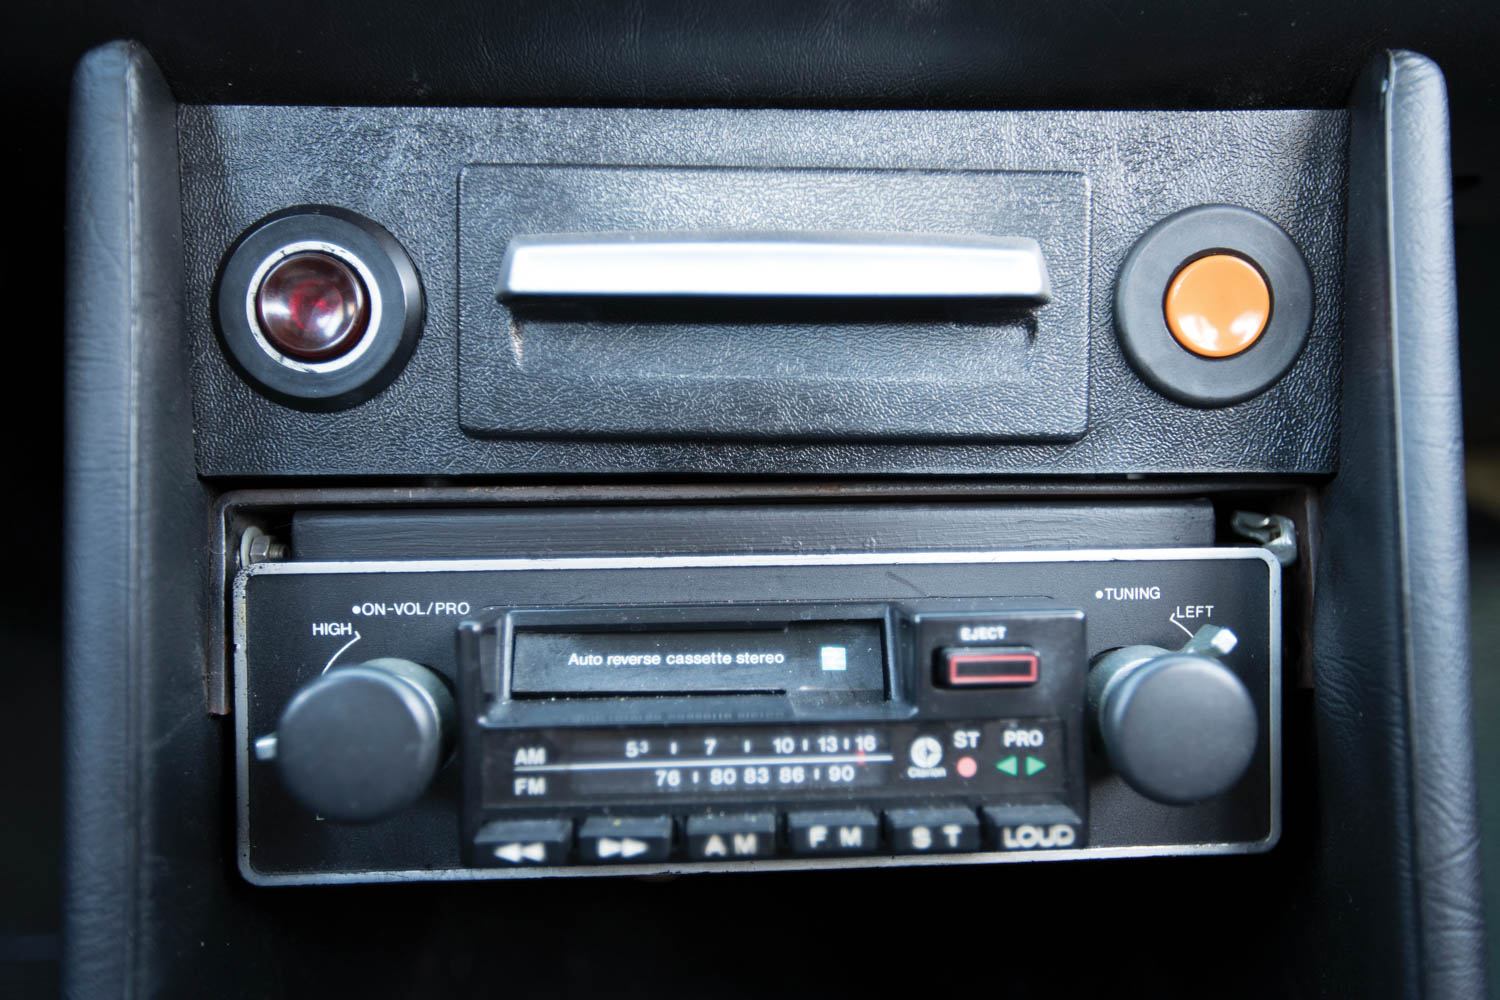 1974 BMW 2002 Turbo radio